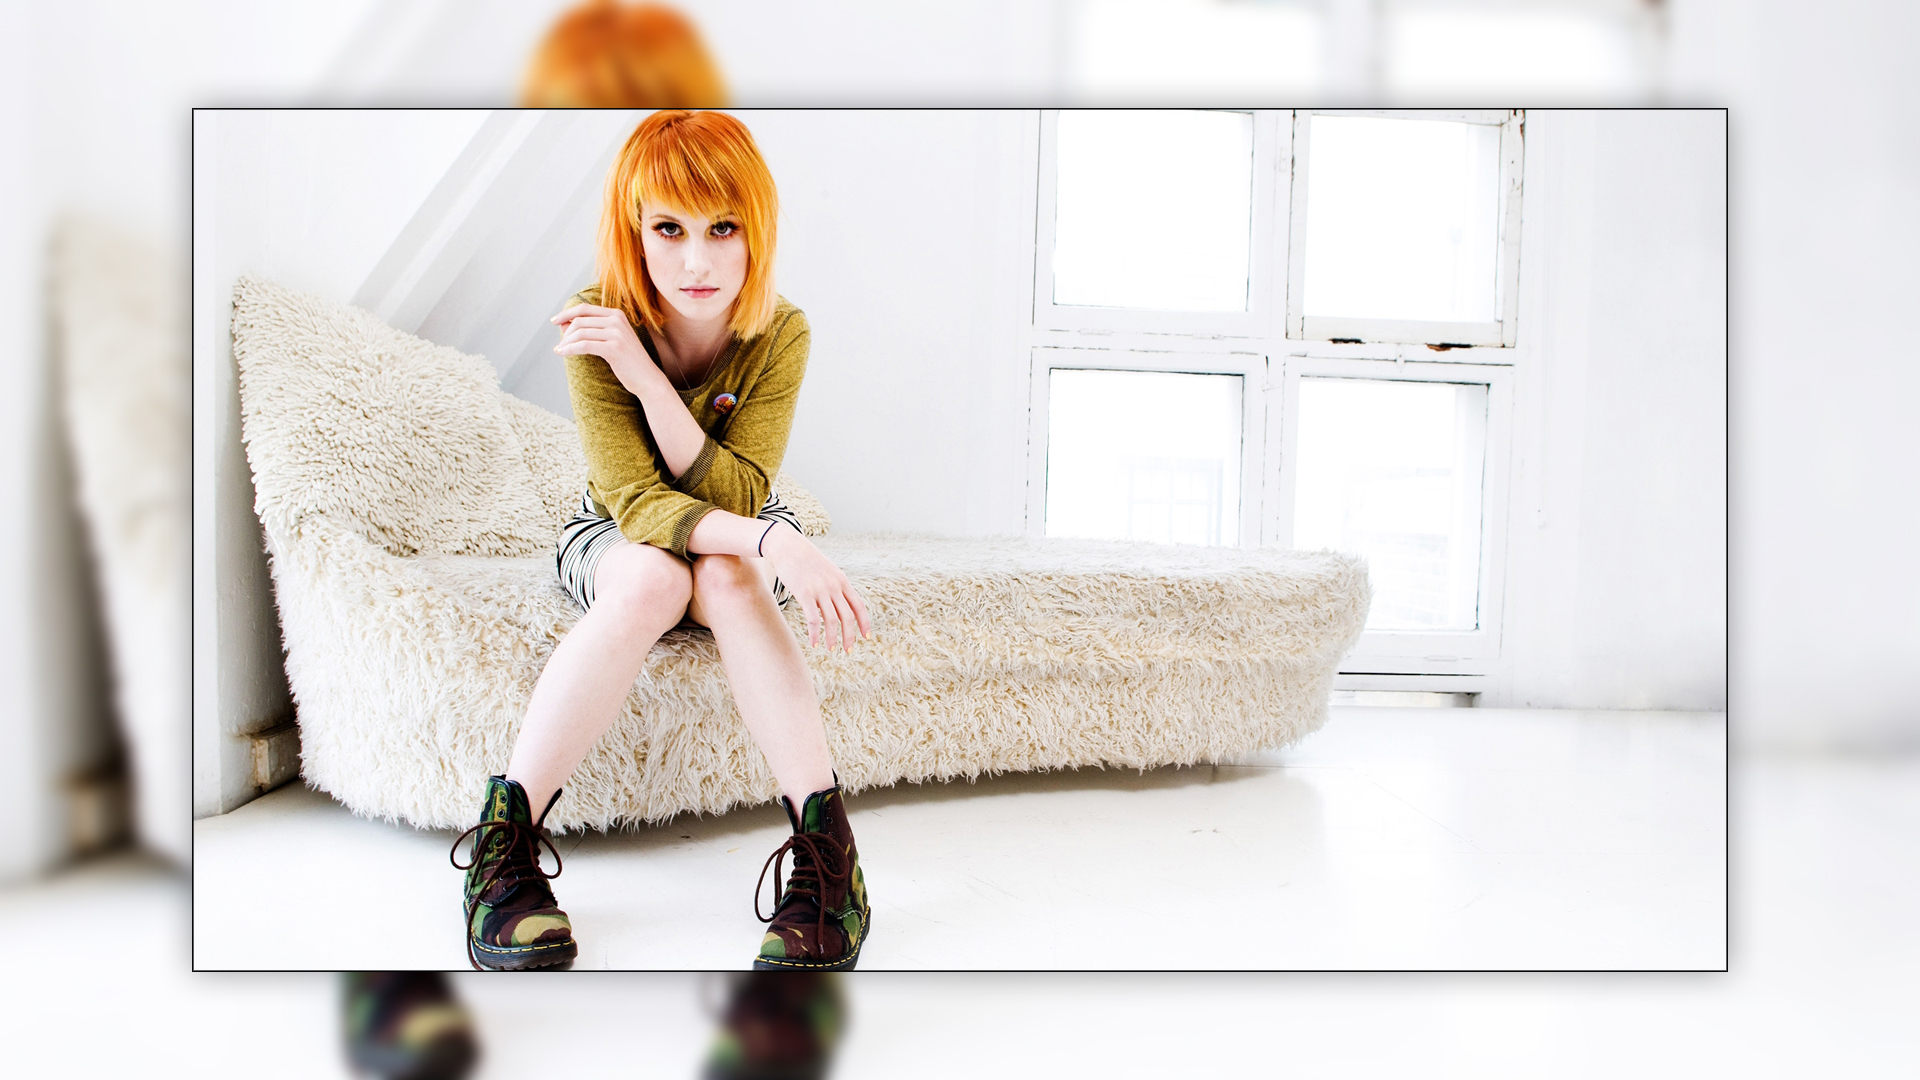 Hayley Nichole Williams 554.74 Kb